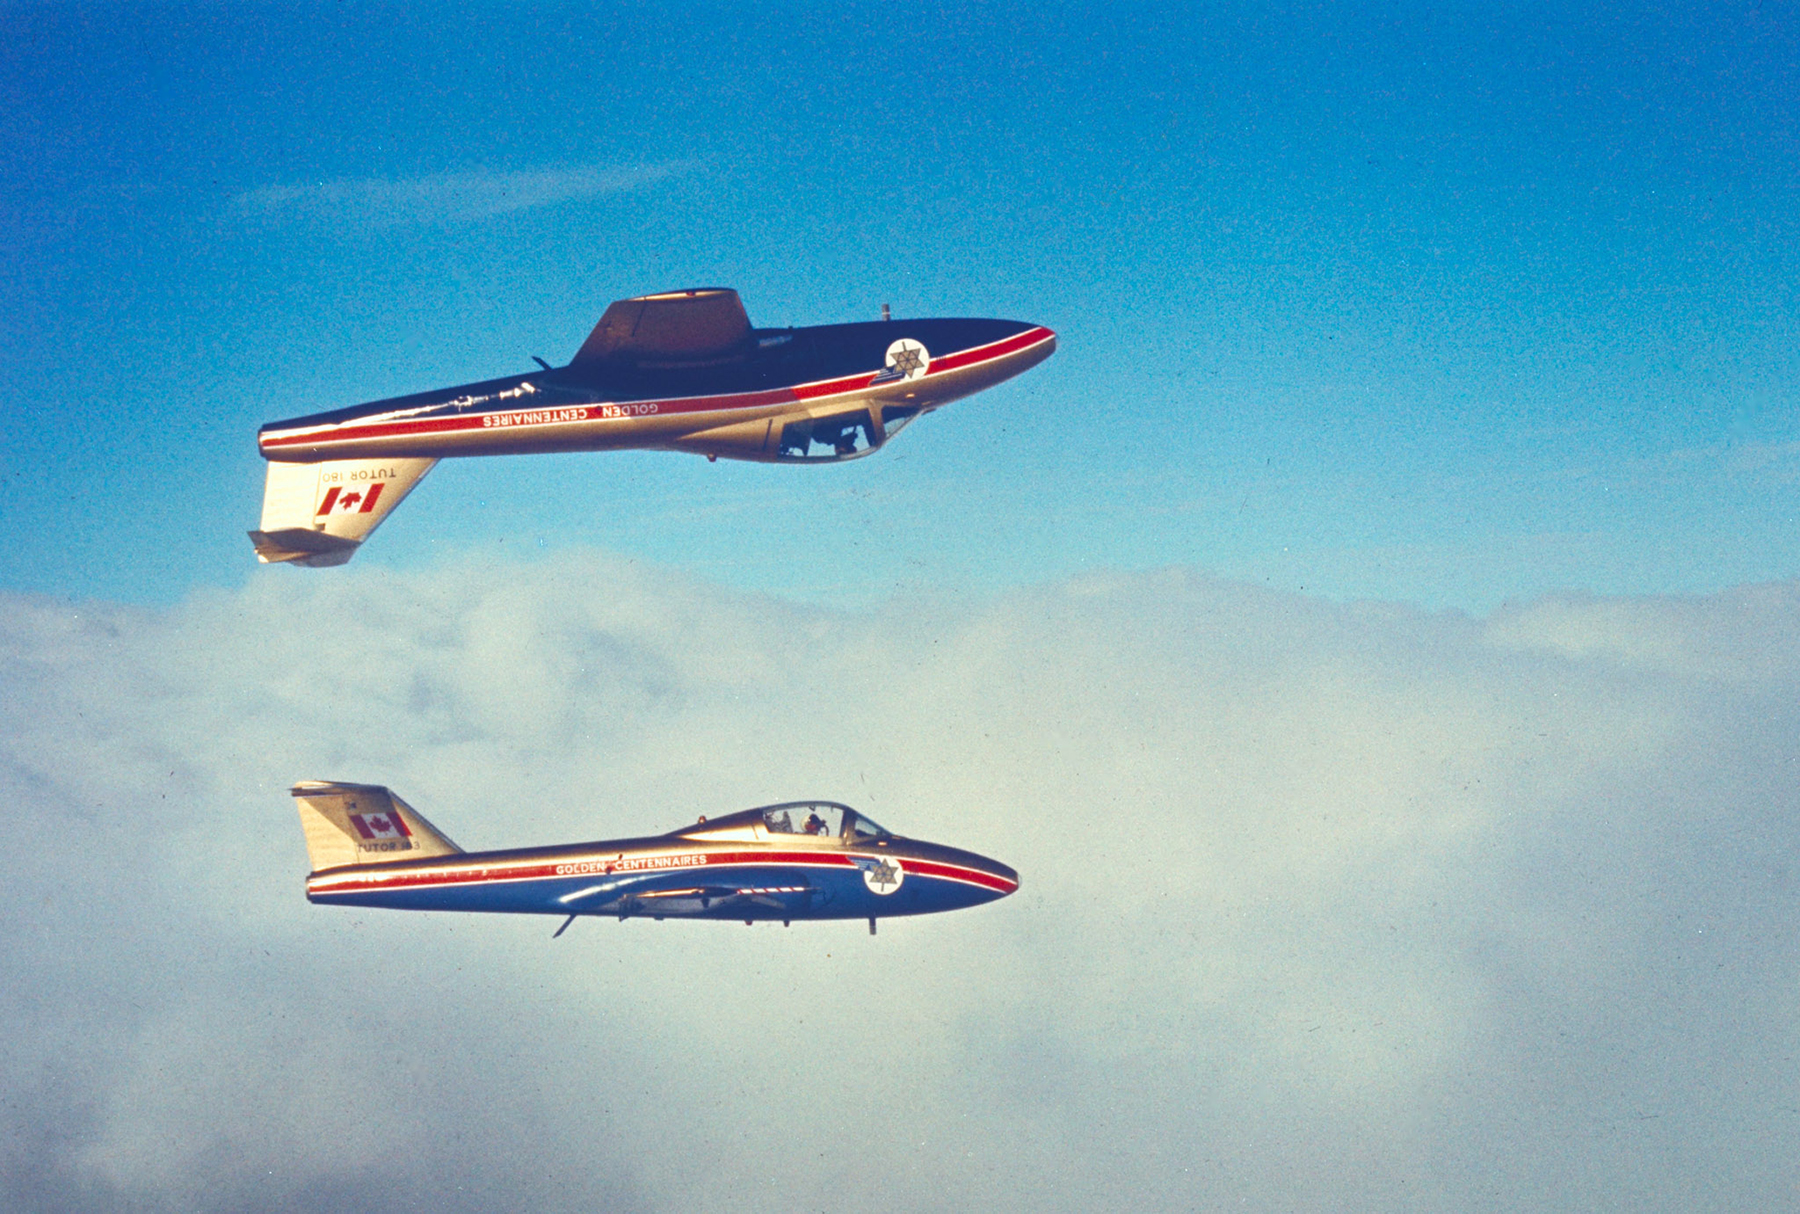 At first glance, Golden Centennaire CT-114 Tutor aircraft appear to fly one directly above the other in an undated air-to-air photograph. In fact, there is a carefully predetermined amount of lateral separation between them as well. PHOTO: DND Archives, RNC-1589-11